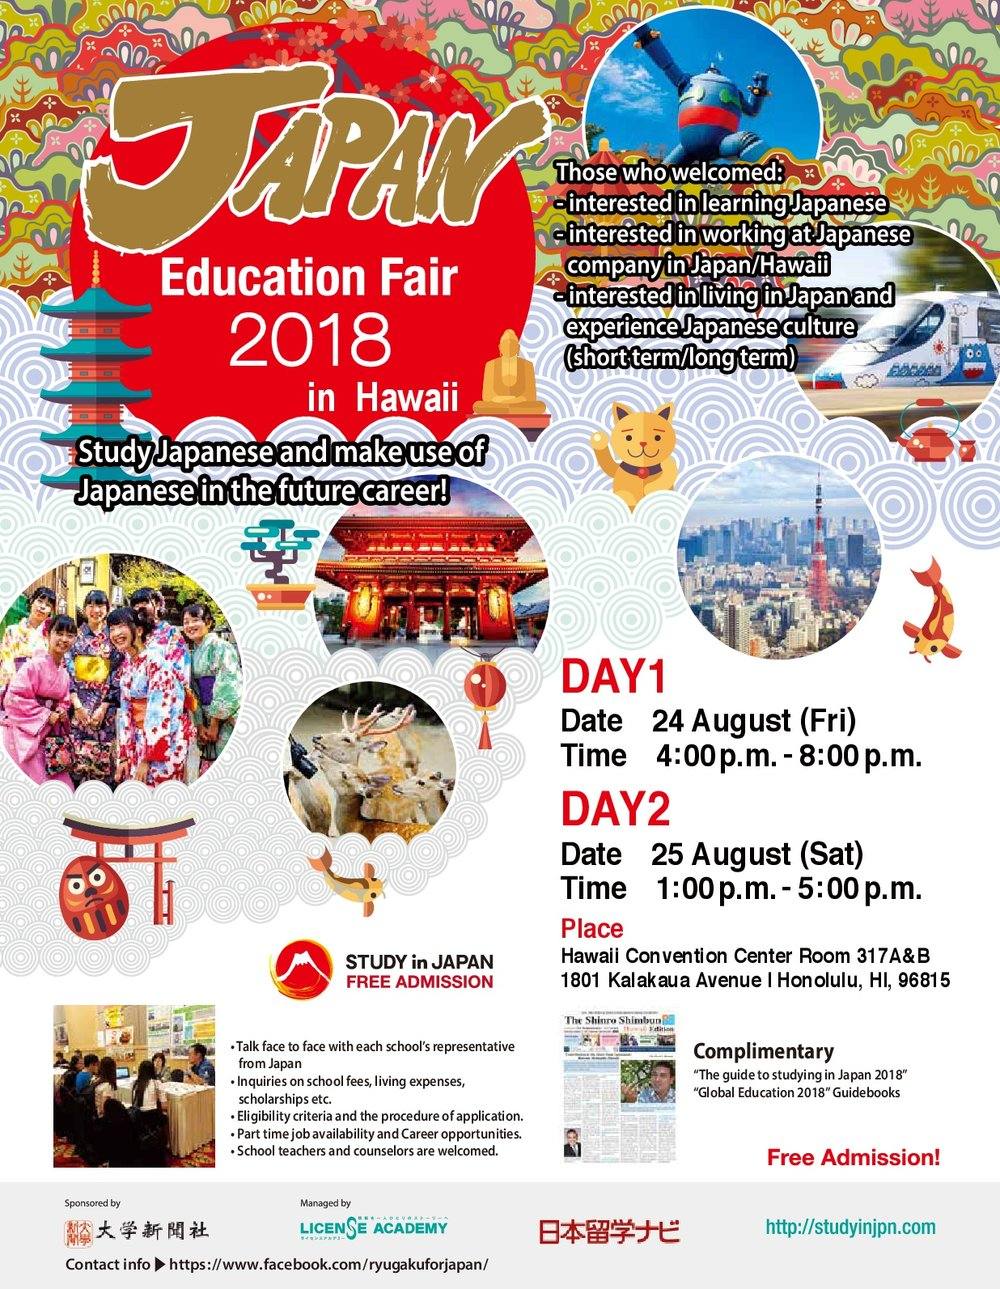 Japan Education Fair - August 24-25, 2018Click here for a pdf version.